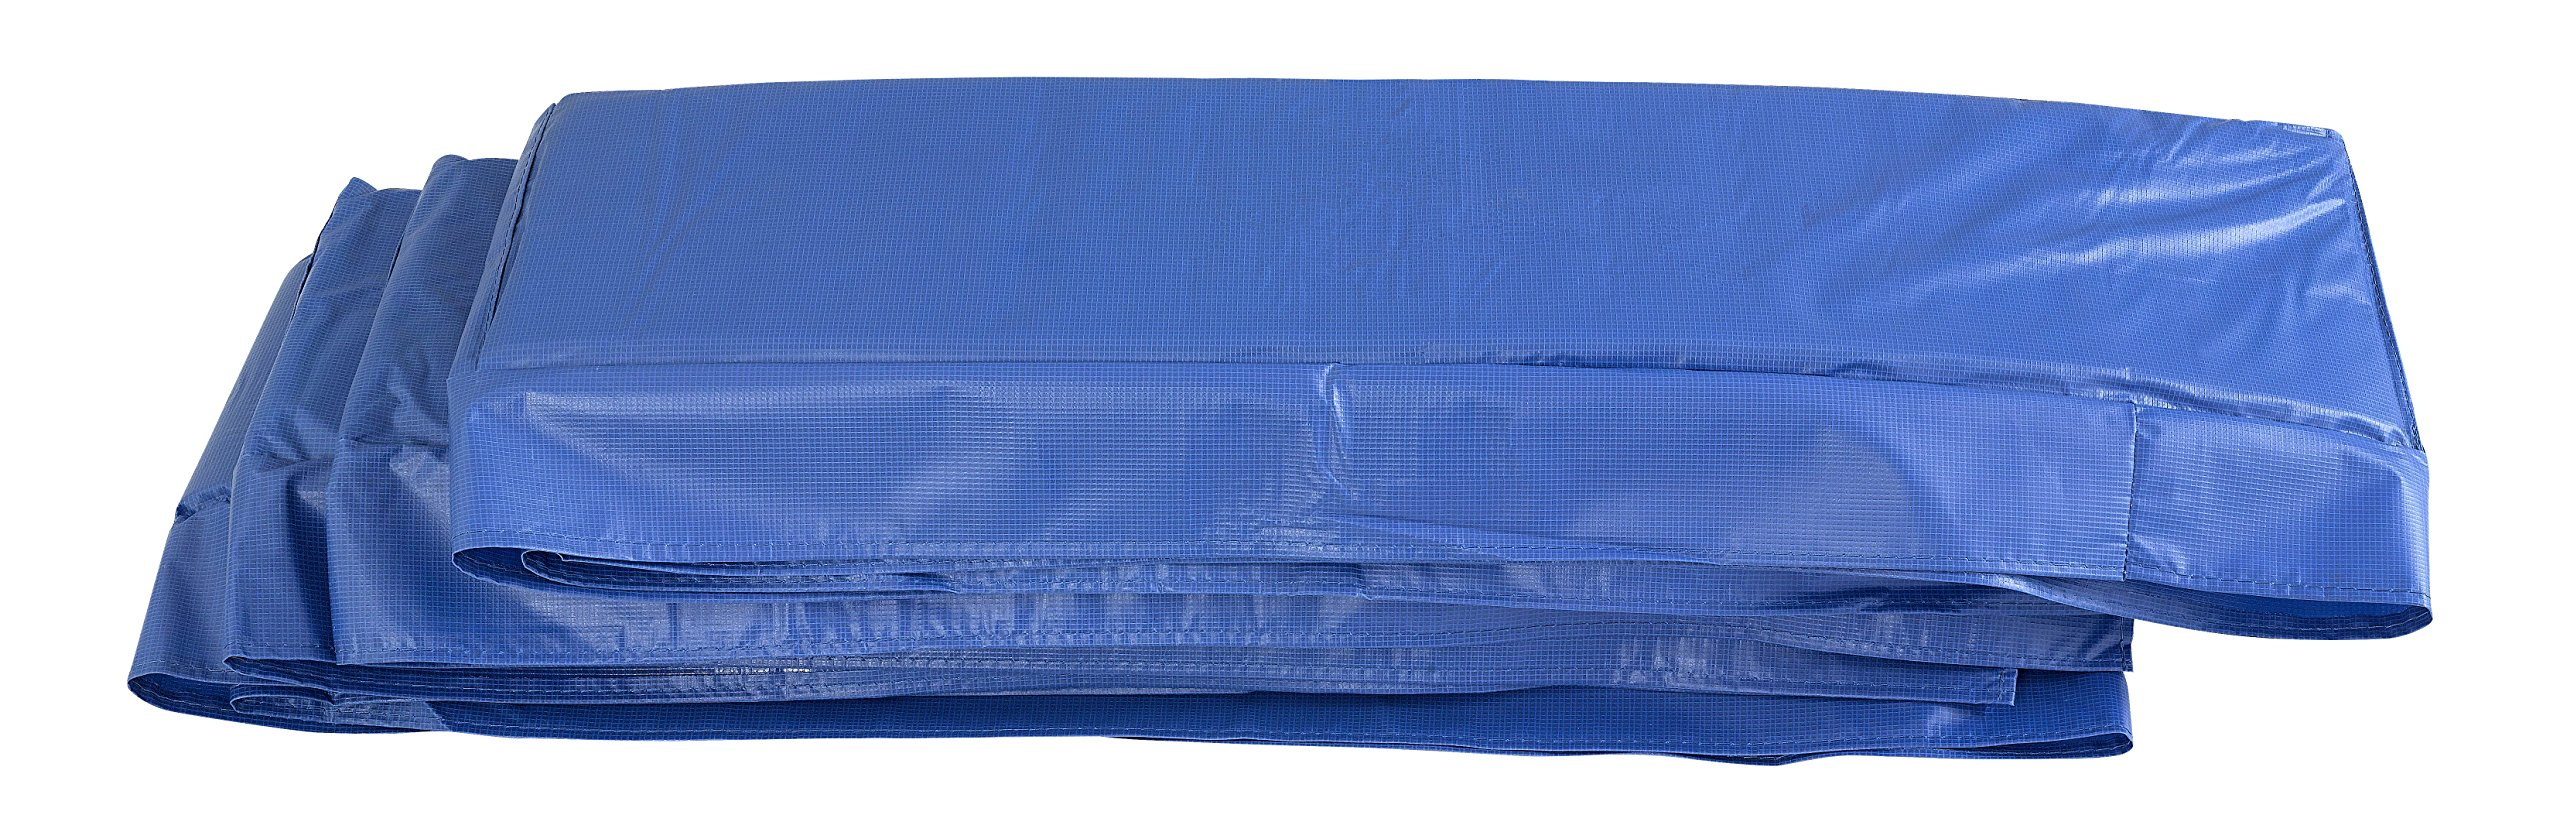 Upper Bounce Super Trampoline Replacement Safety Pad (Spring Cover) for 8' x 14' Rectangular Frames, Blue